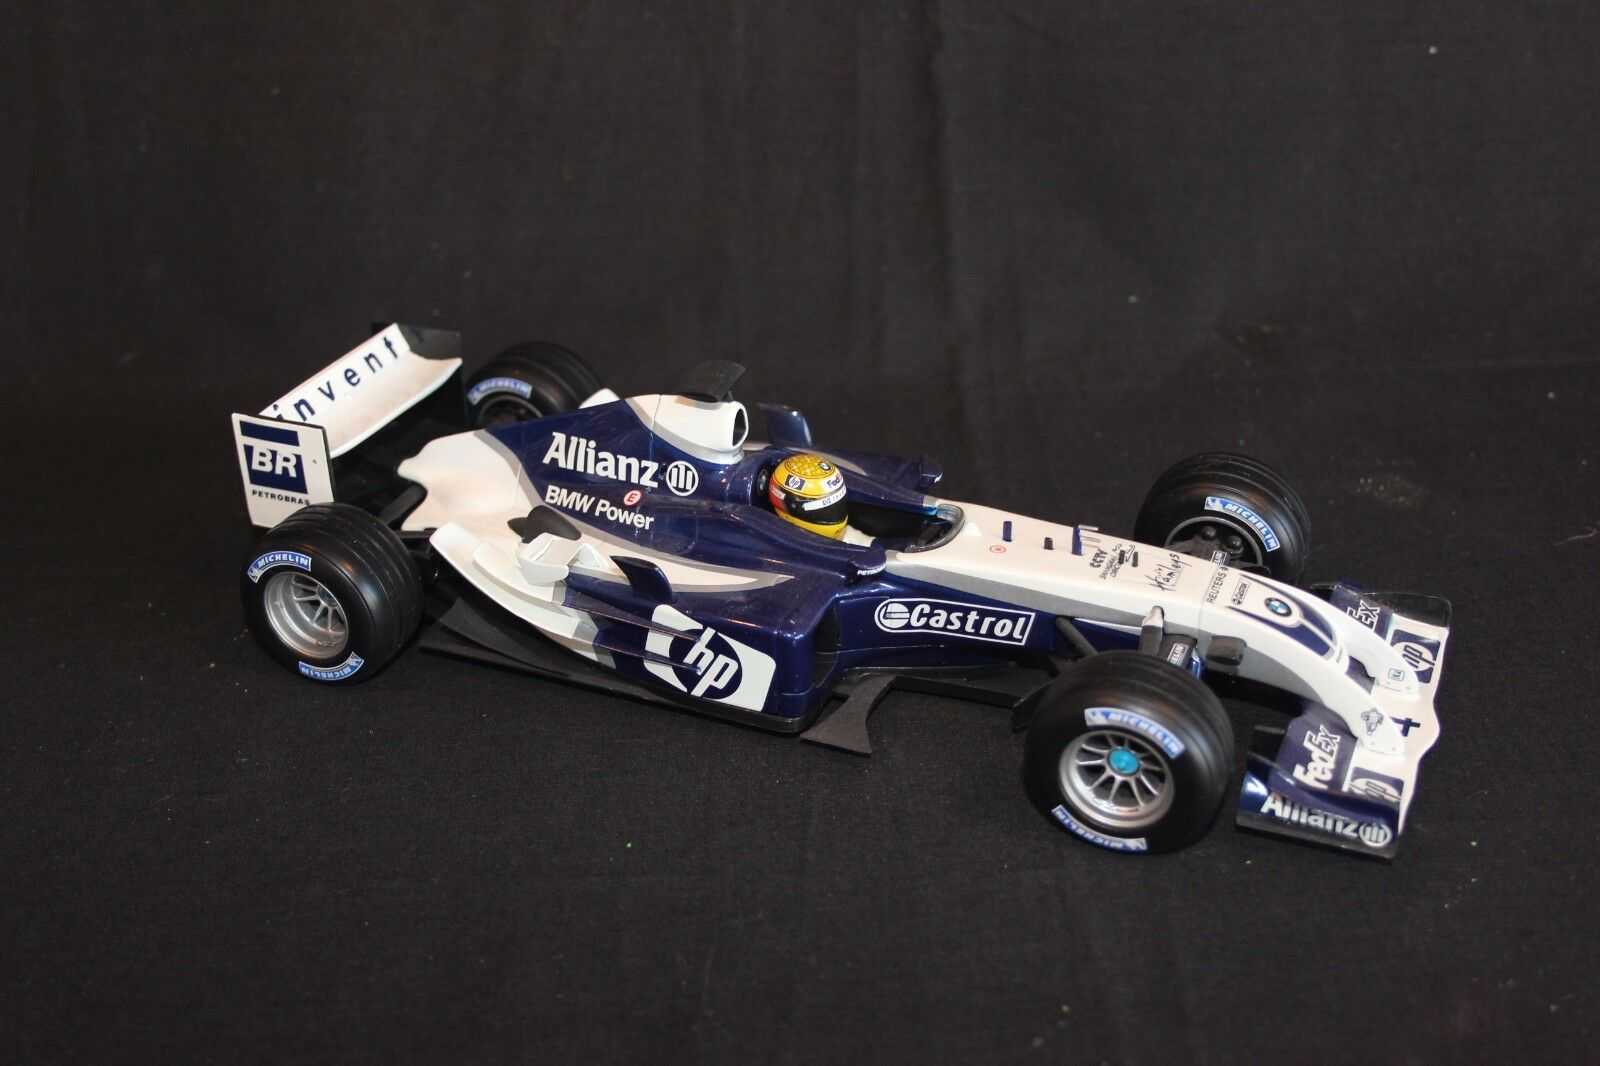 Hot Wheels Williams FW26 2004 1 18  4 Ralf Schumacher (GER)  Walrus Nose